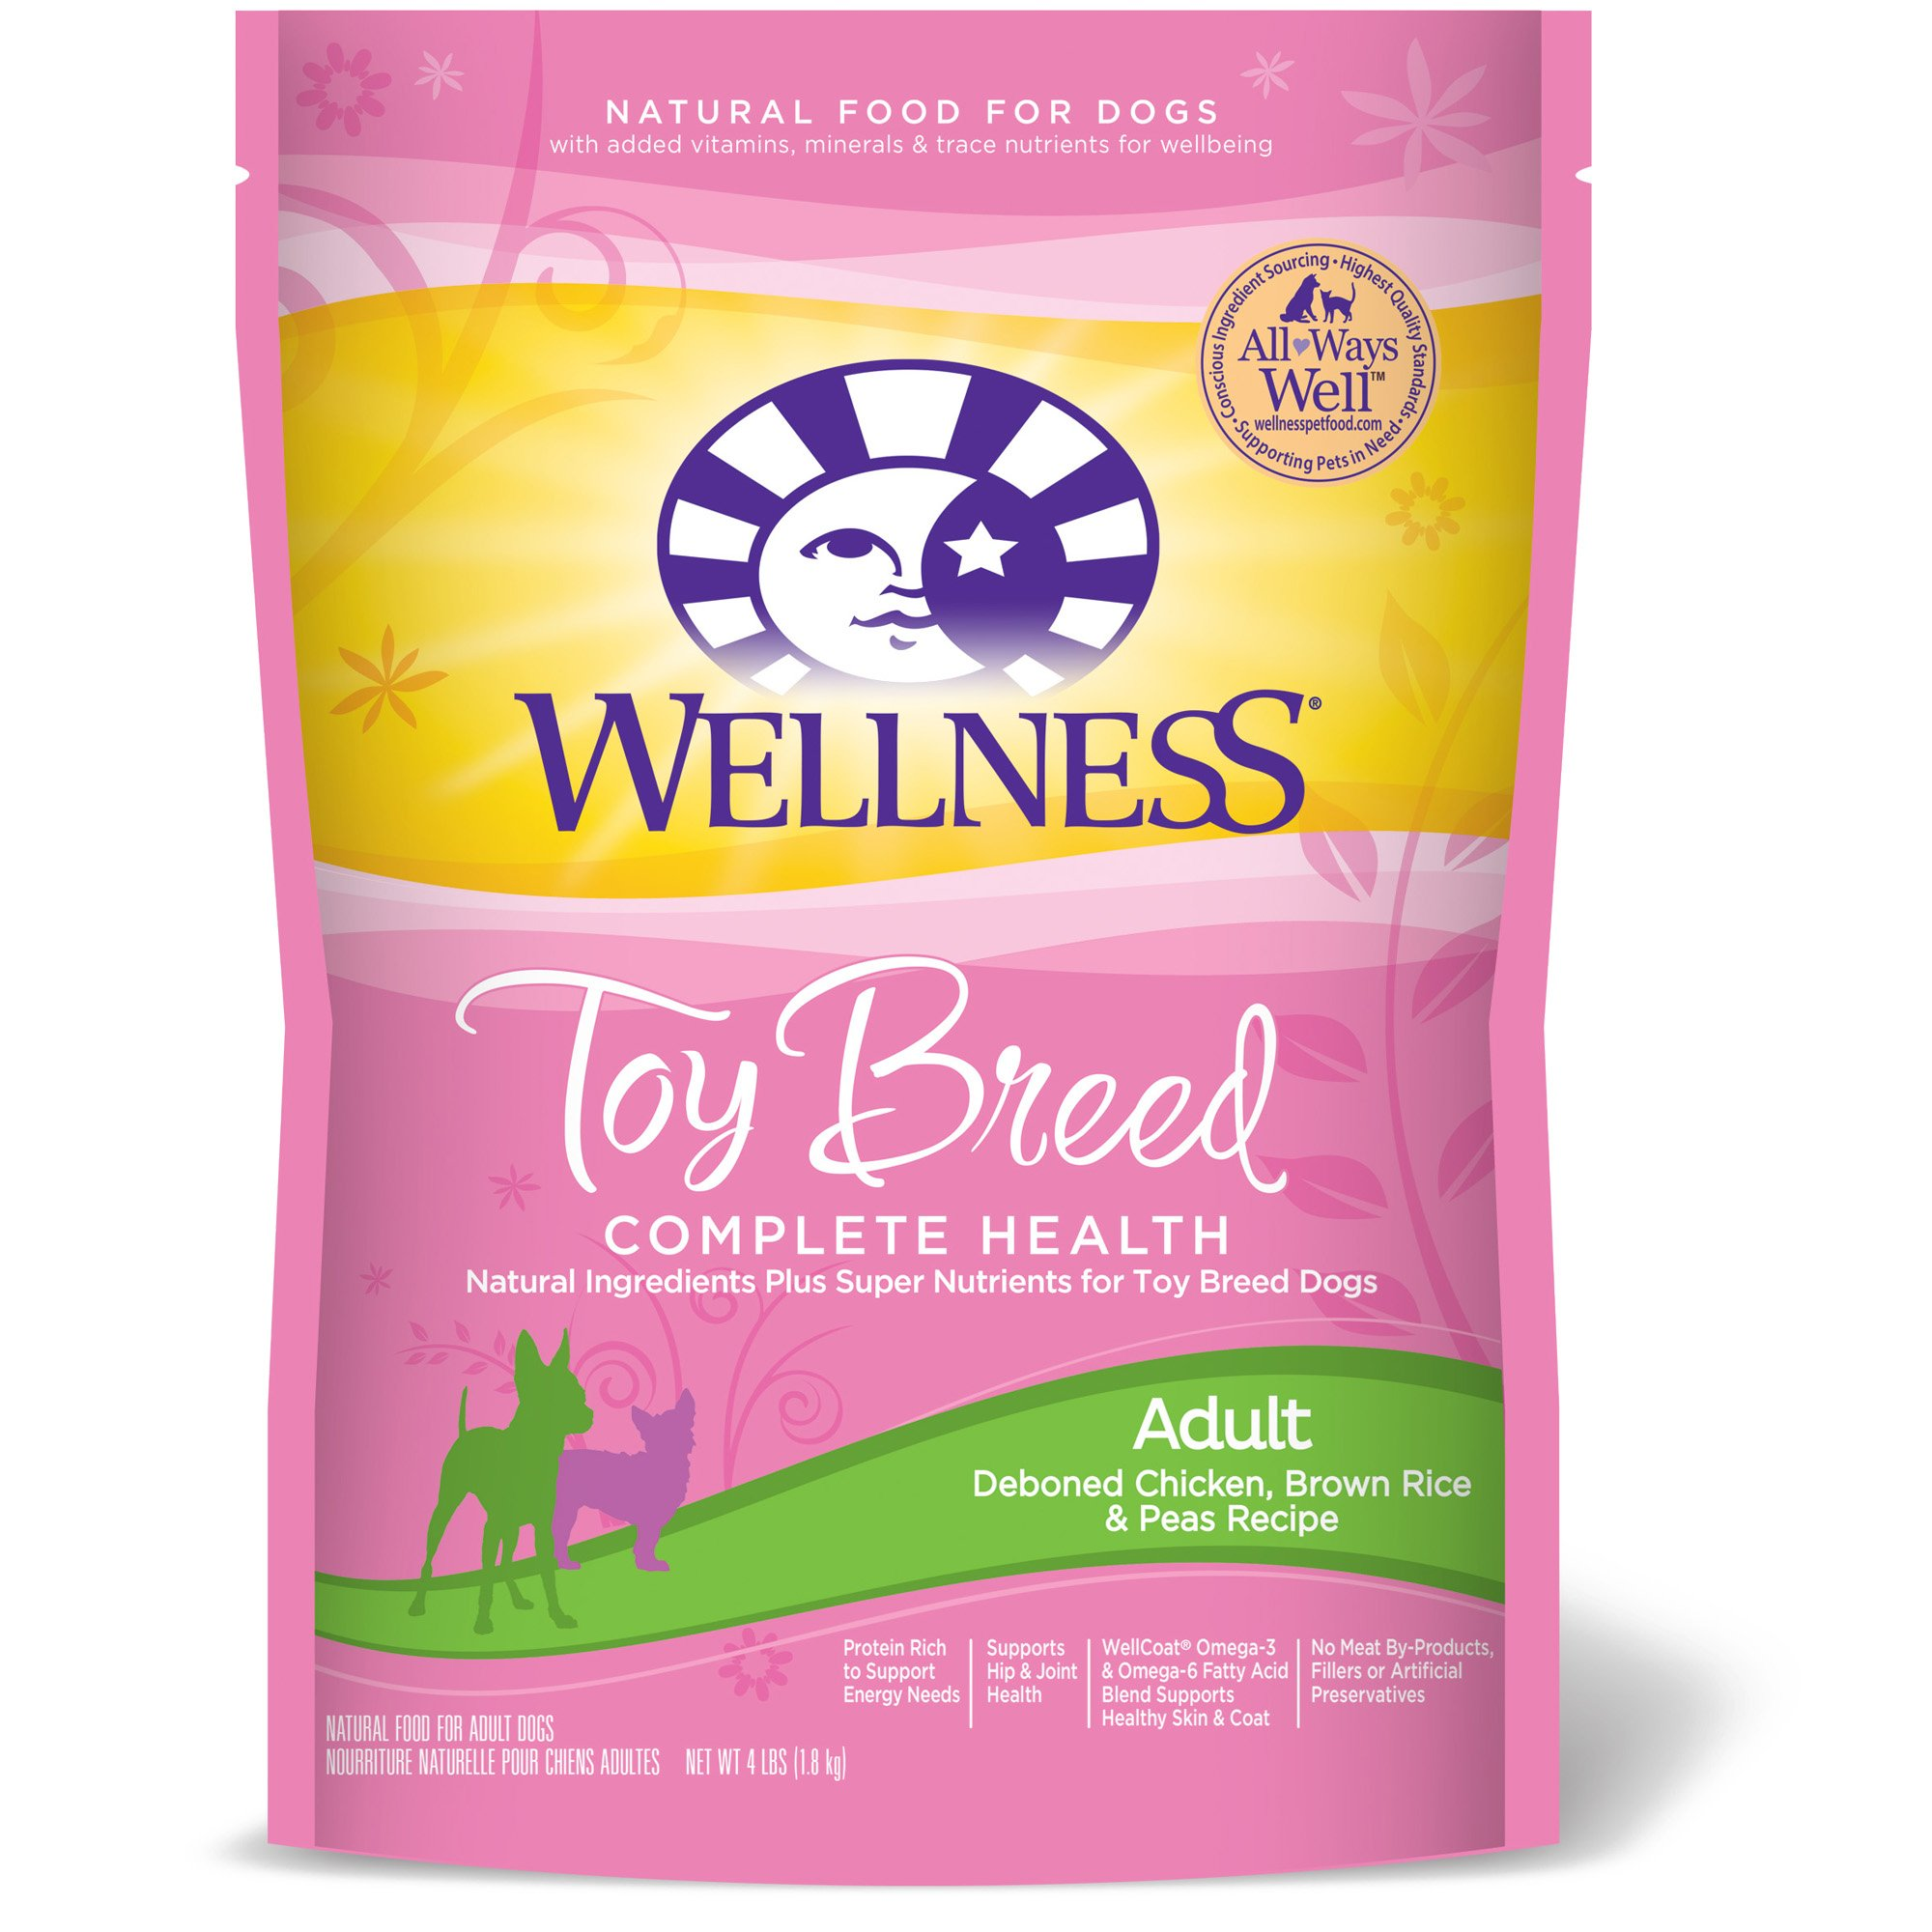 Wellness Toy Breed Complete Health Chicken Brown Rice & Peas Adult Dog Food